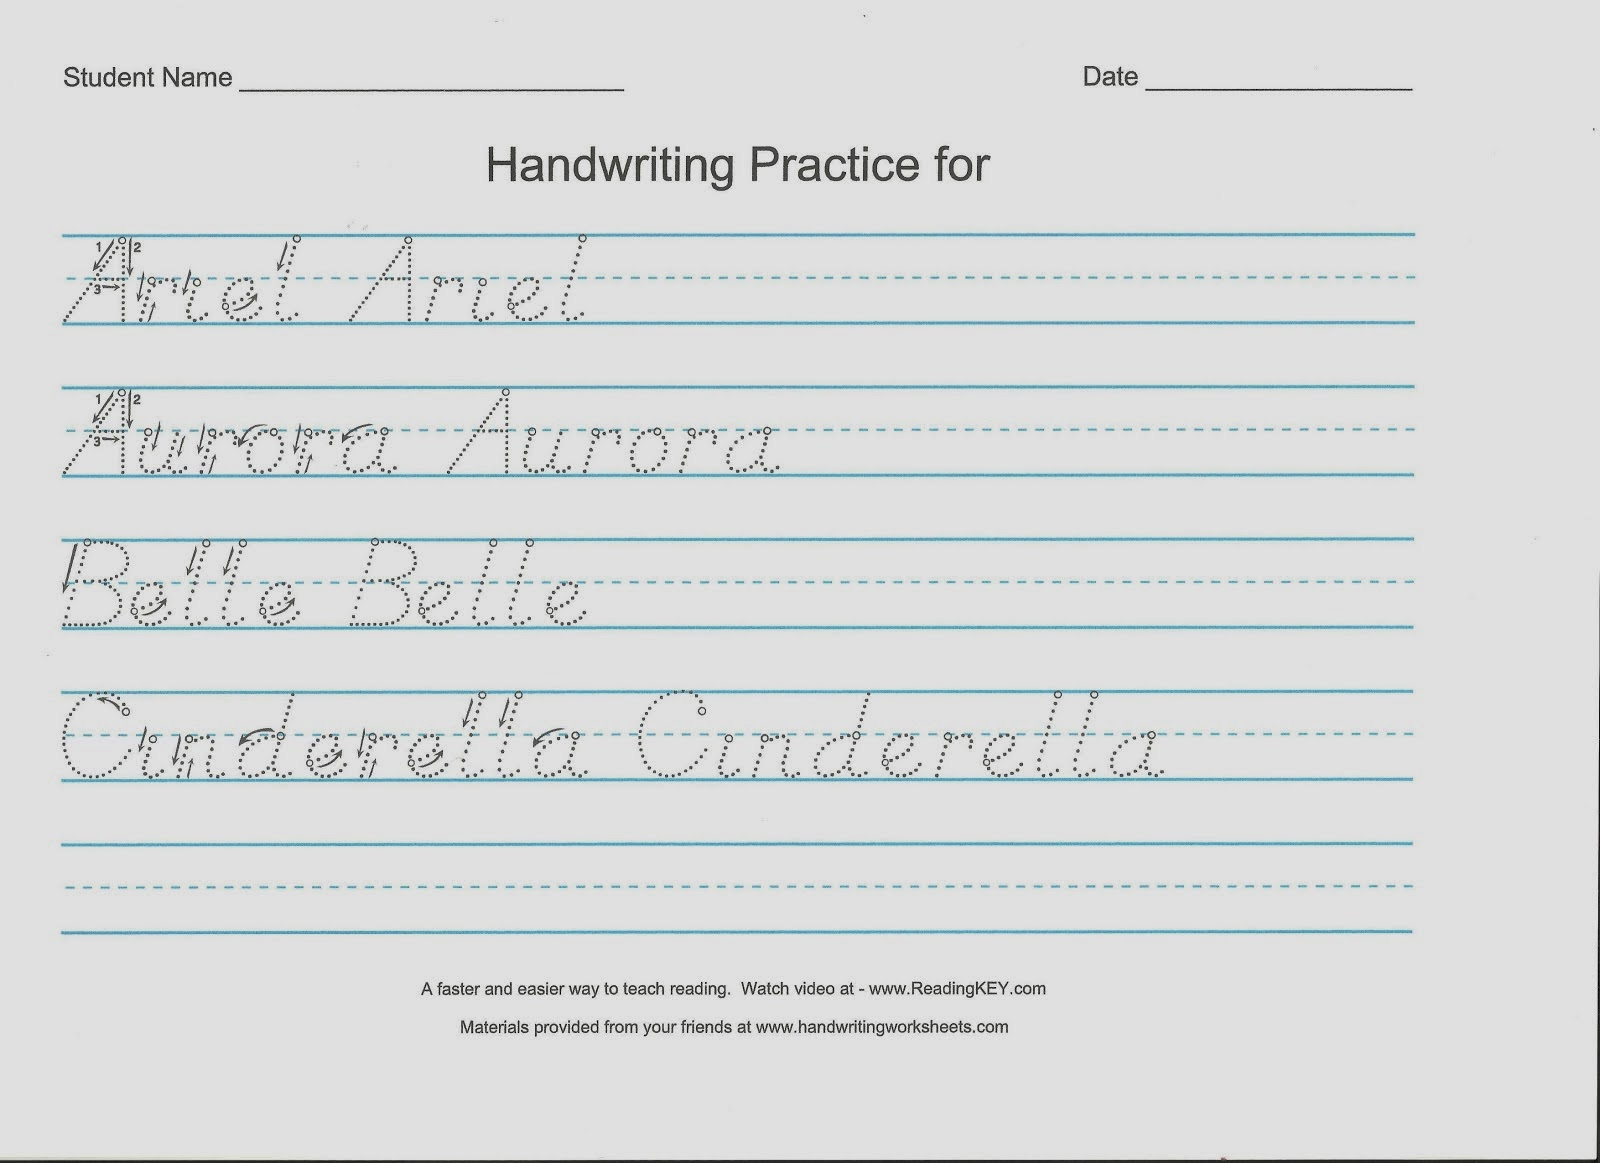 ... handwriting worksheets. ( see a print sample or see a cursive sample